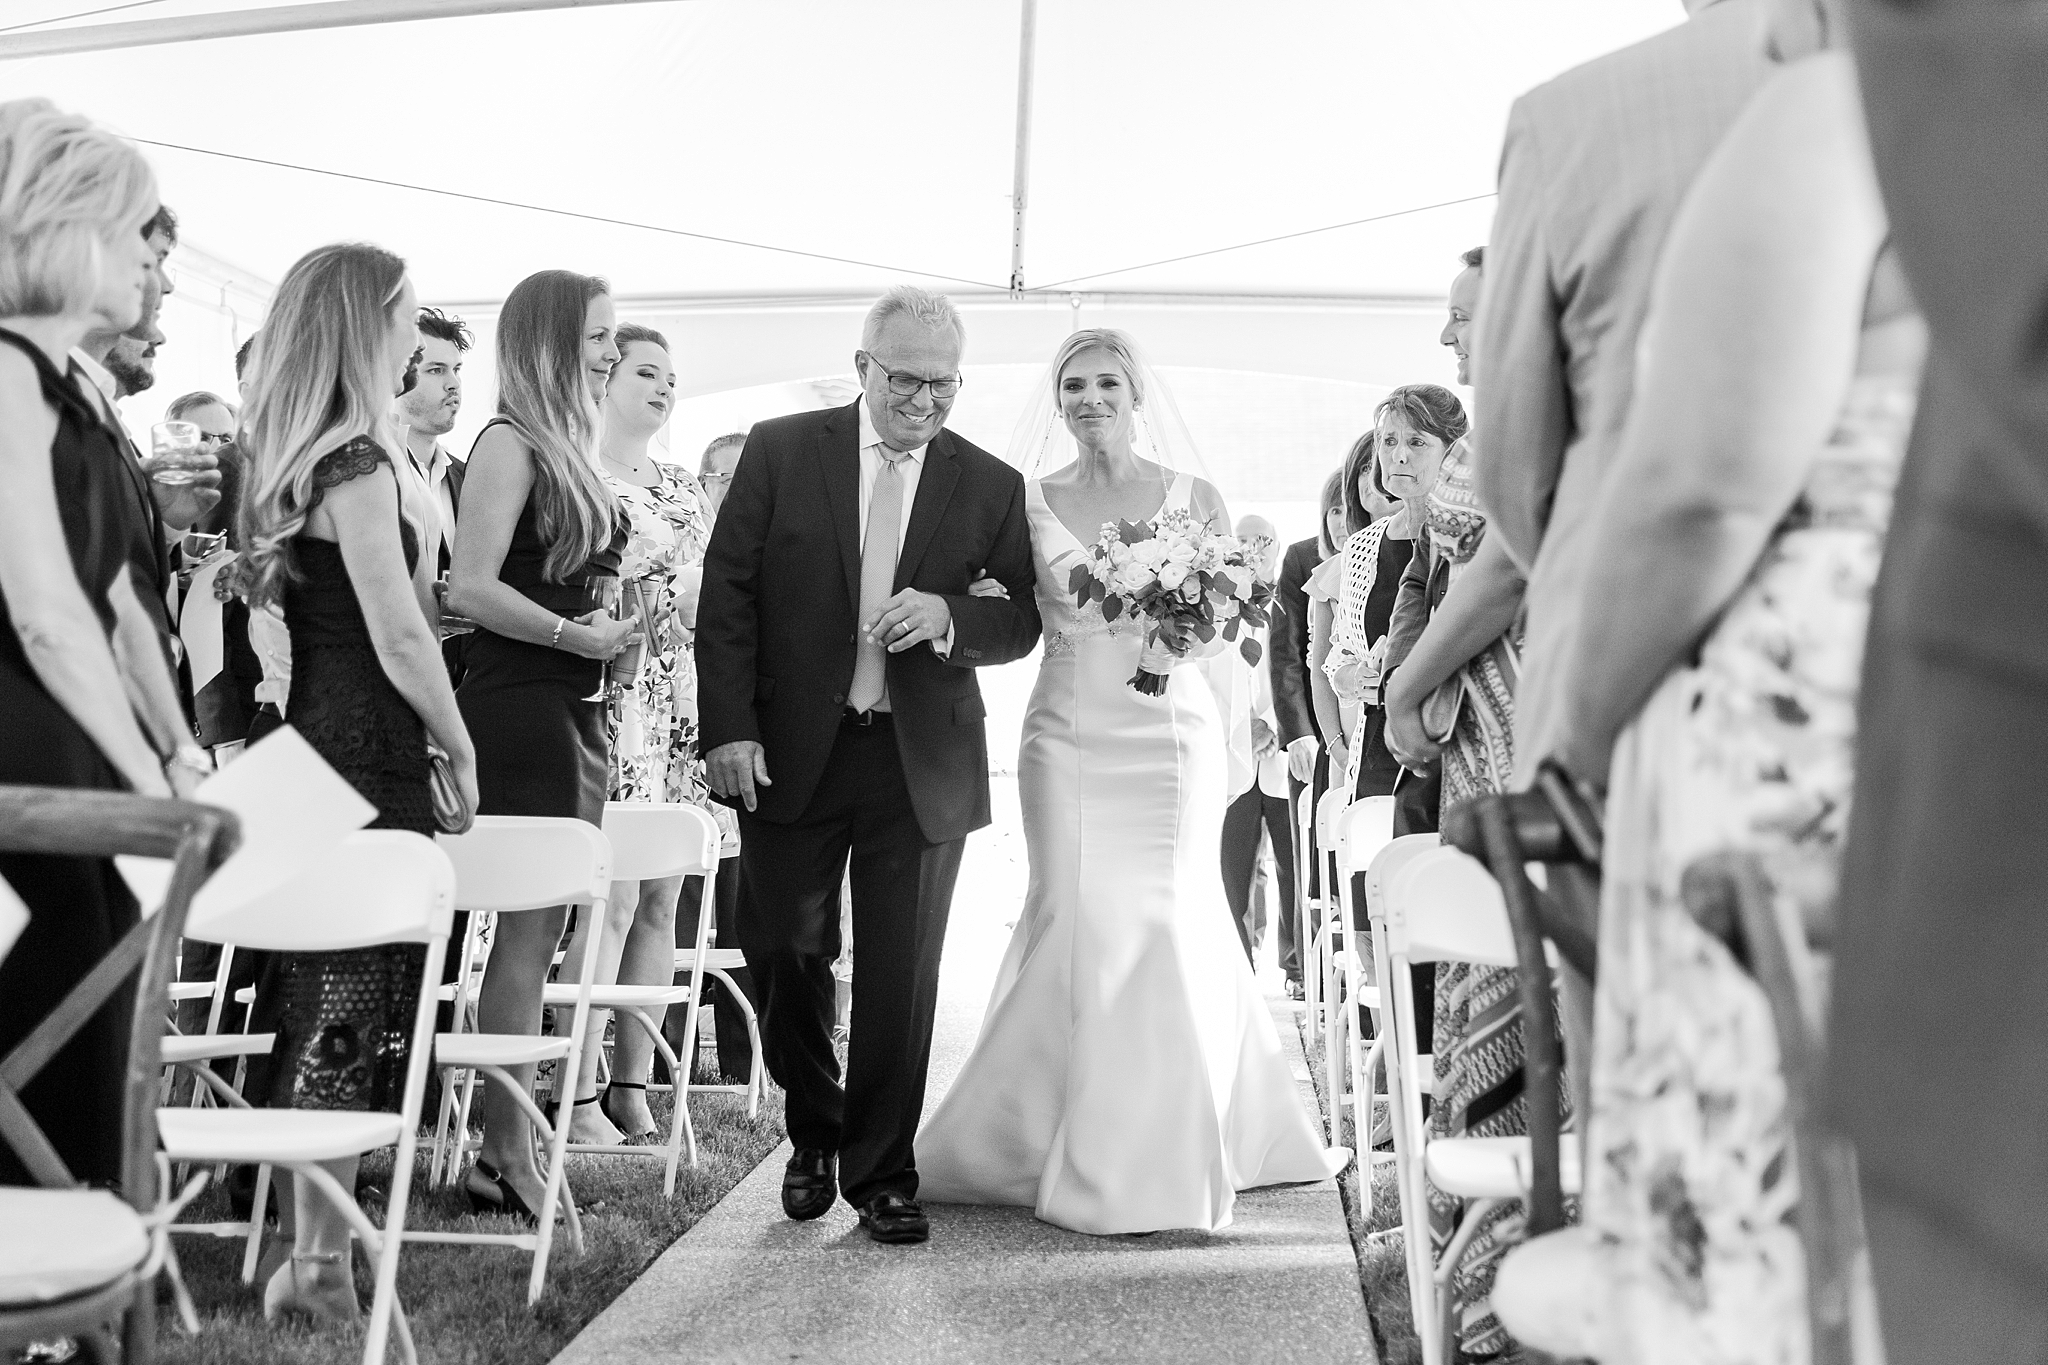 chapman-house-casually-chic-wedding-photography-in-rochester-michigan-by-courtney-carolyn-photography_0032.jpg